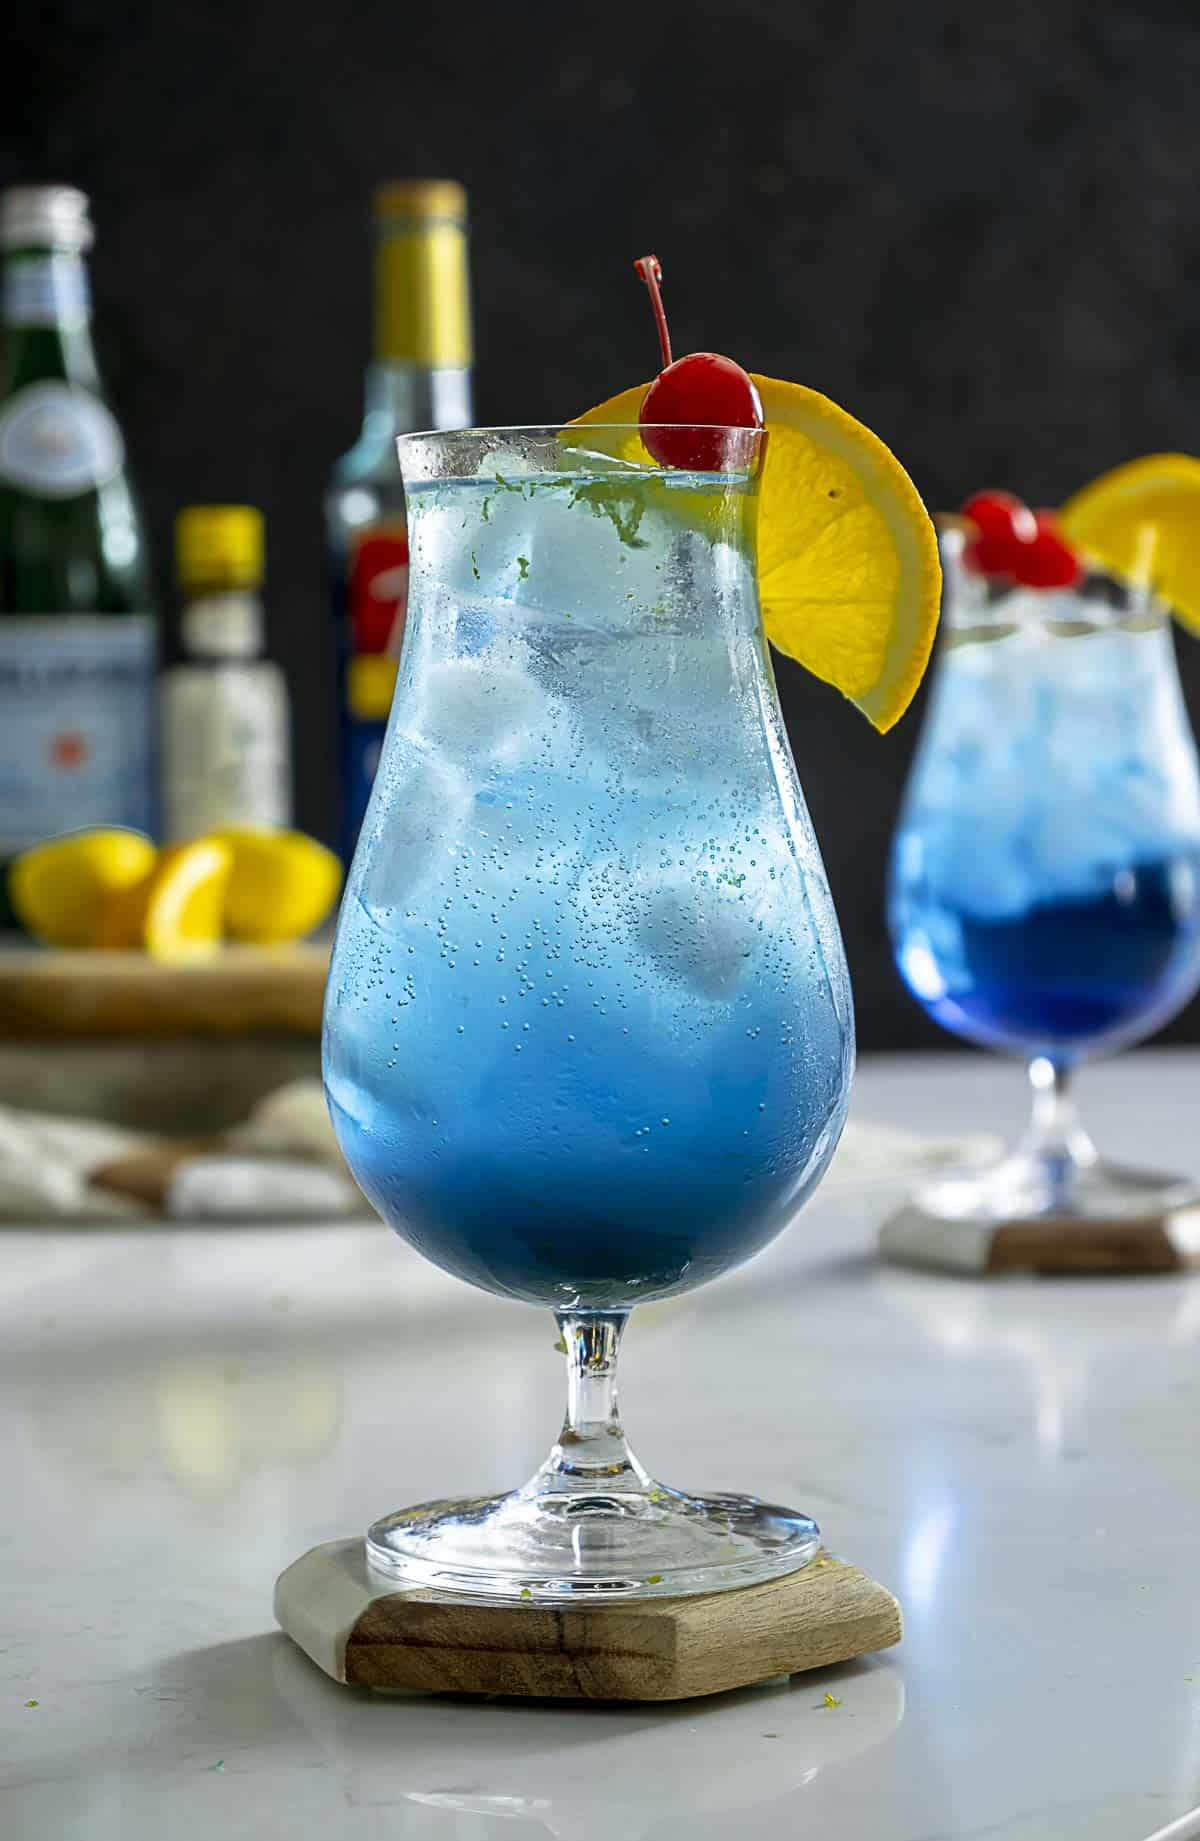 Blue lagoon drink without alcohol on table.